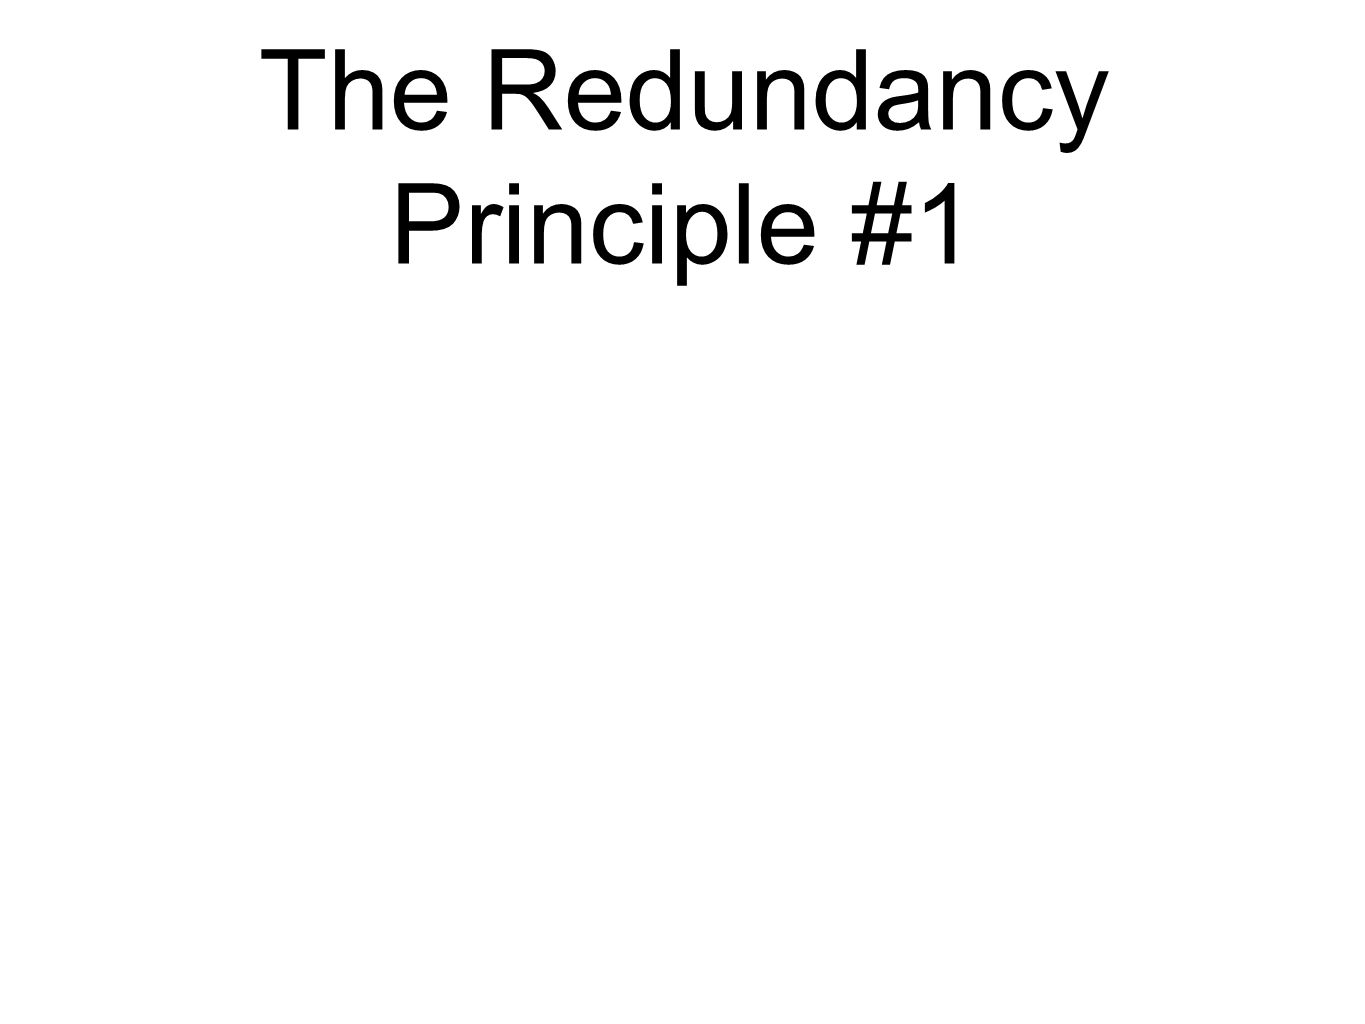 The Redundancy Principle #1